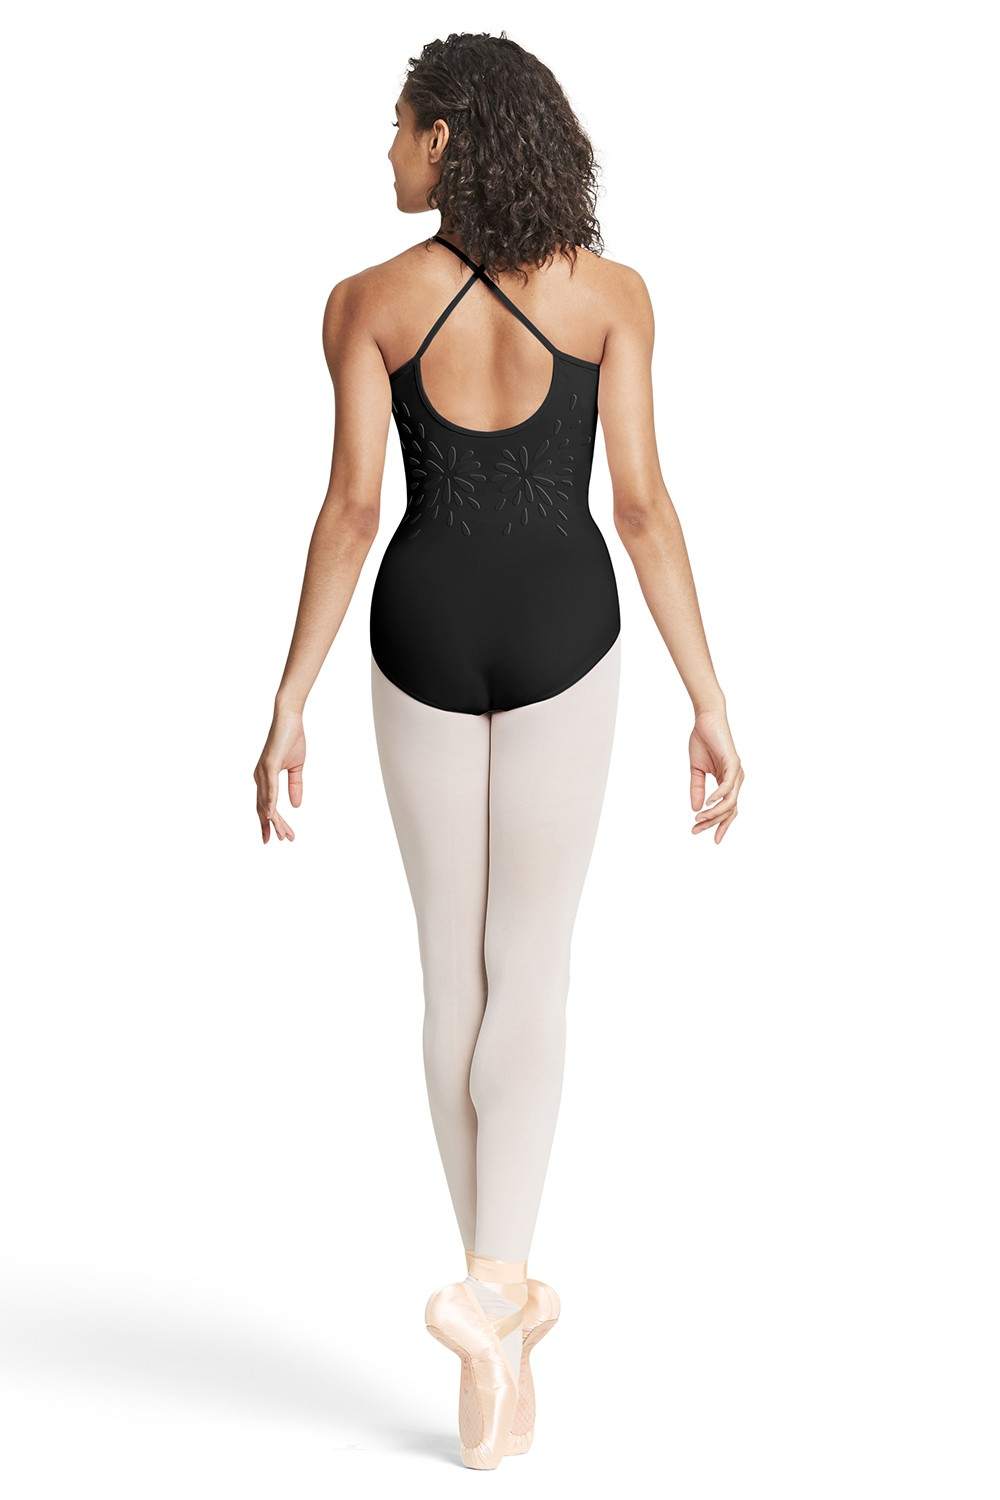 Cross Strap Camisole Leotard Womens Camisole Leotards